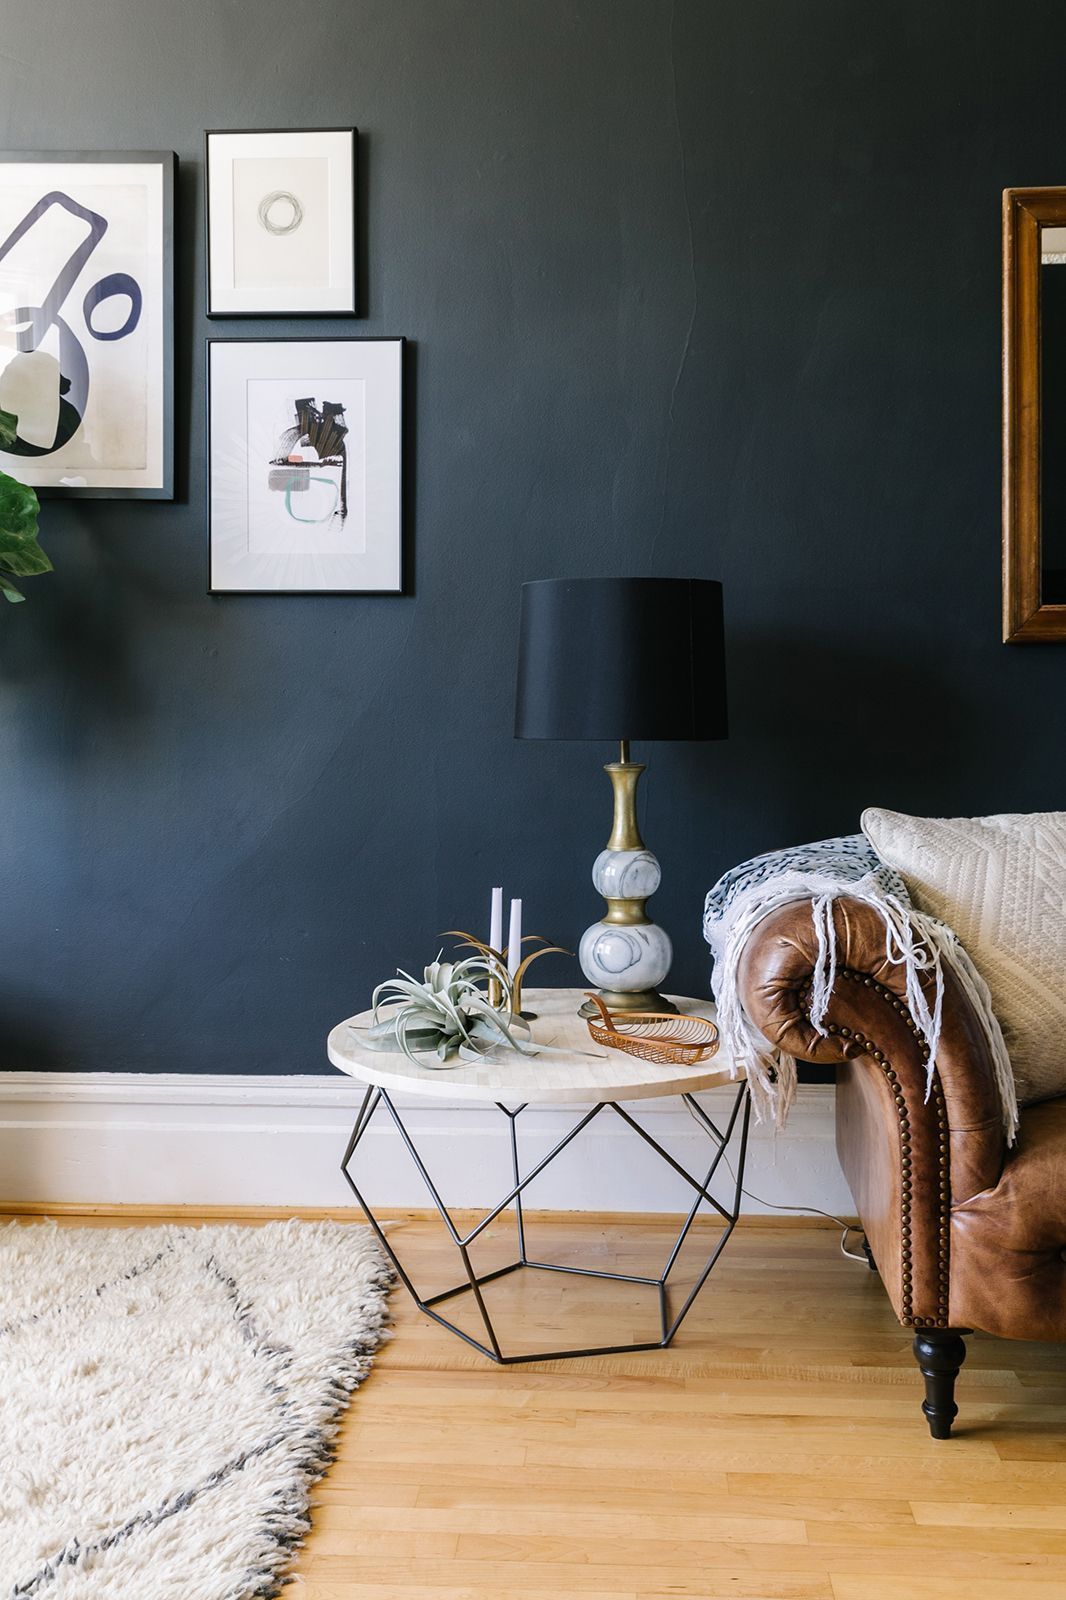 If A Subtle Accent Wall Is More Your Thing You Might Want To Take Cue From This Current Home Trend Inky Walls Made Big Splash Year And Seem